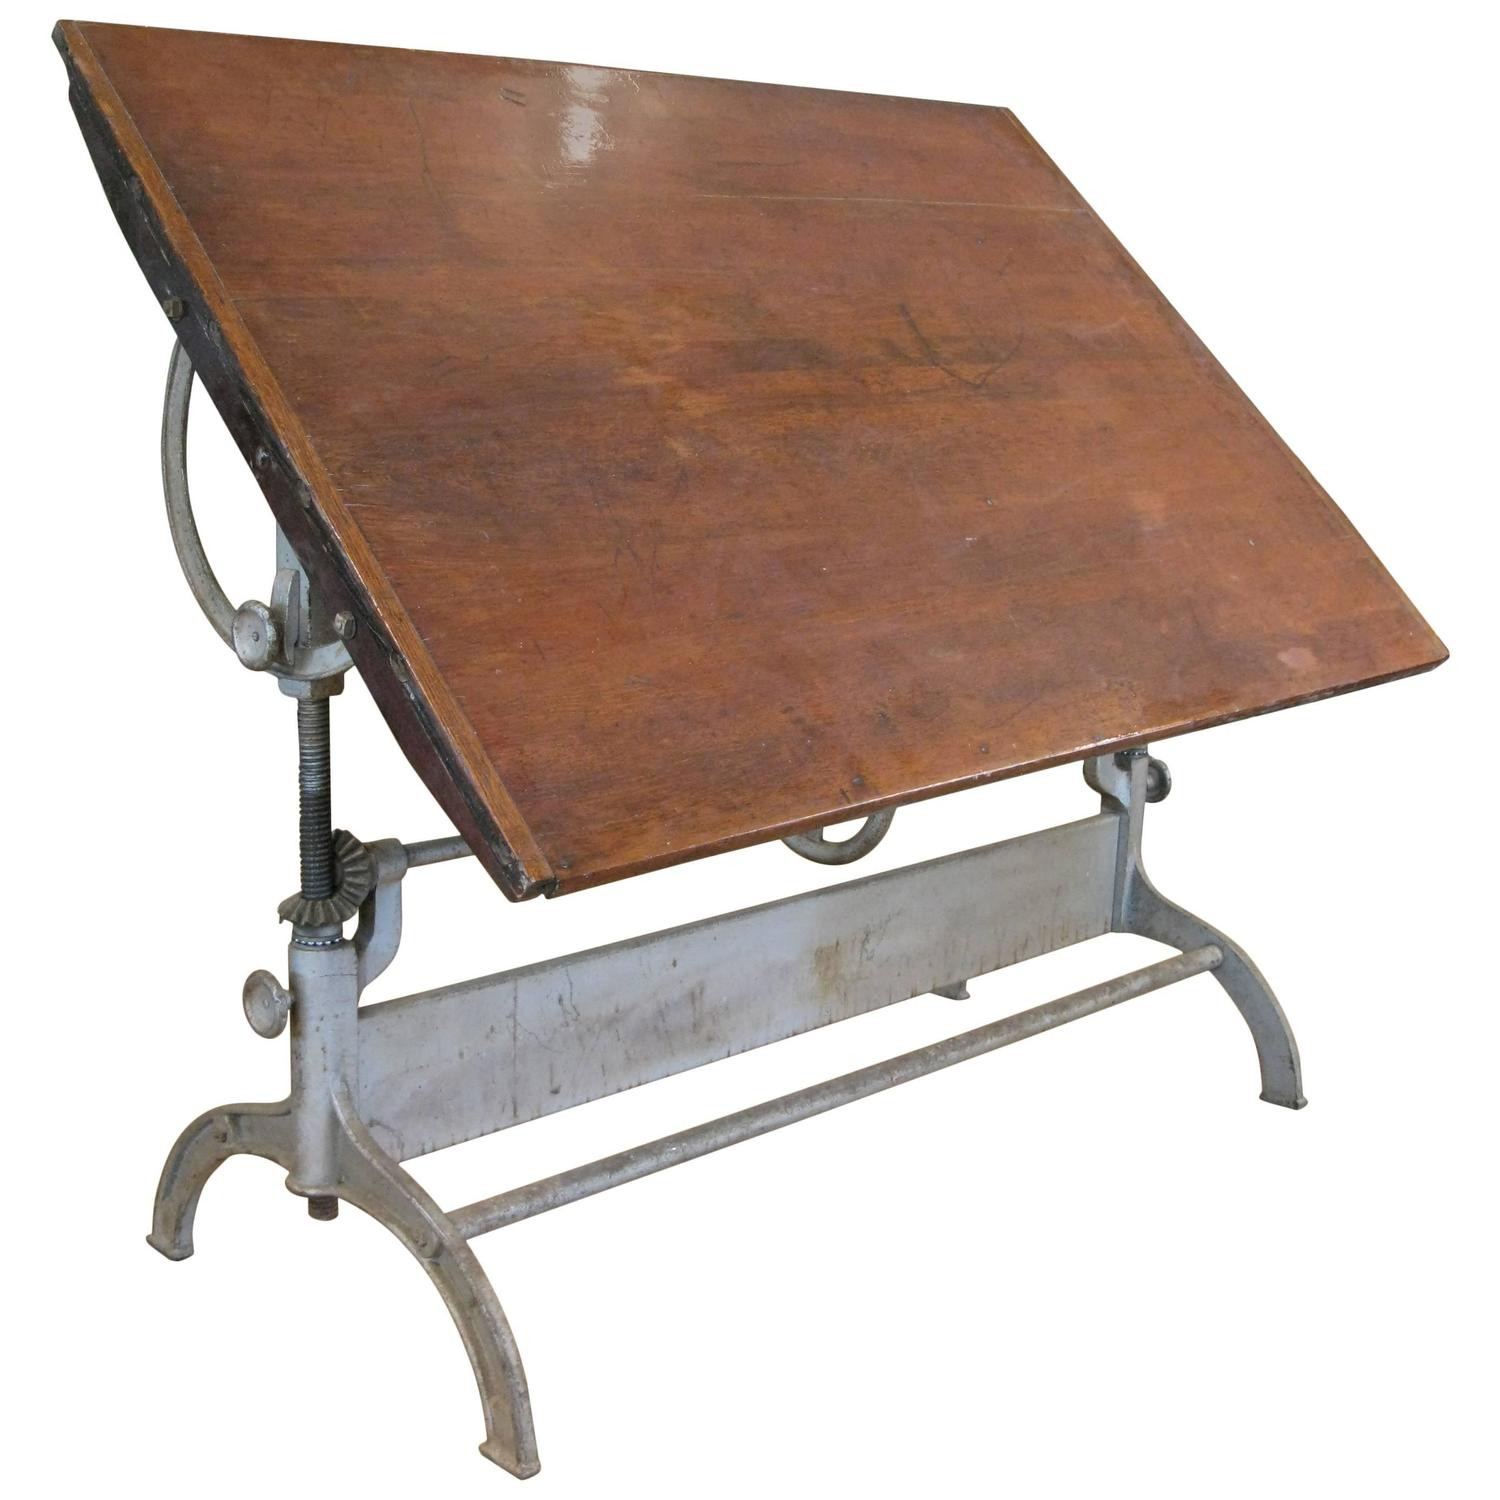 antique industrial cast iron adjustable drafting table at 1stdibs. Black Bedroom Furniture Sets. Home Design Ideas